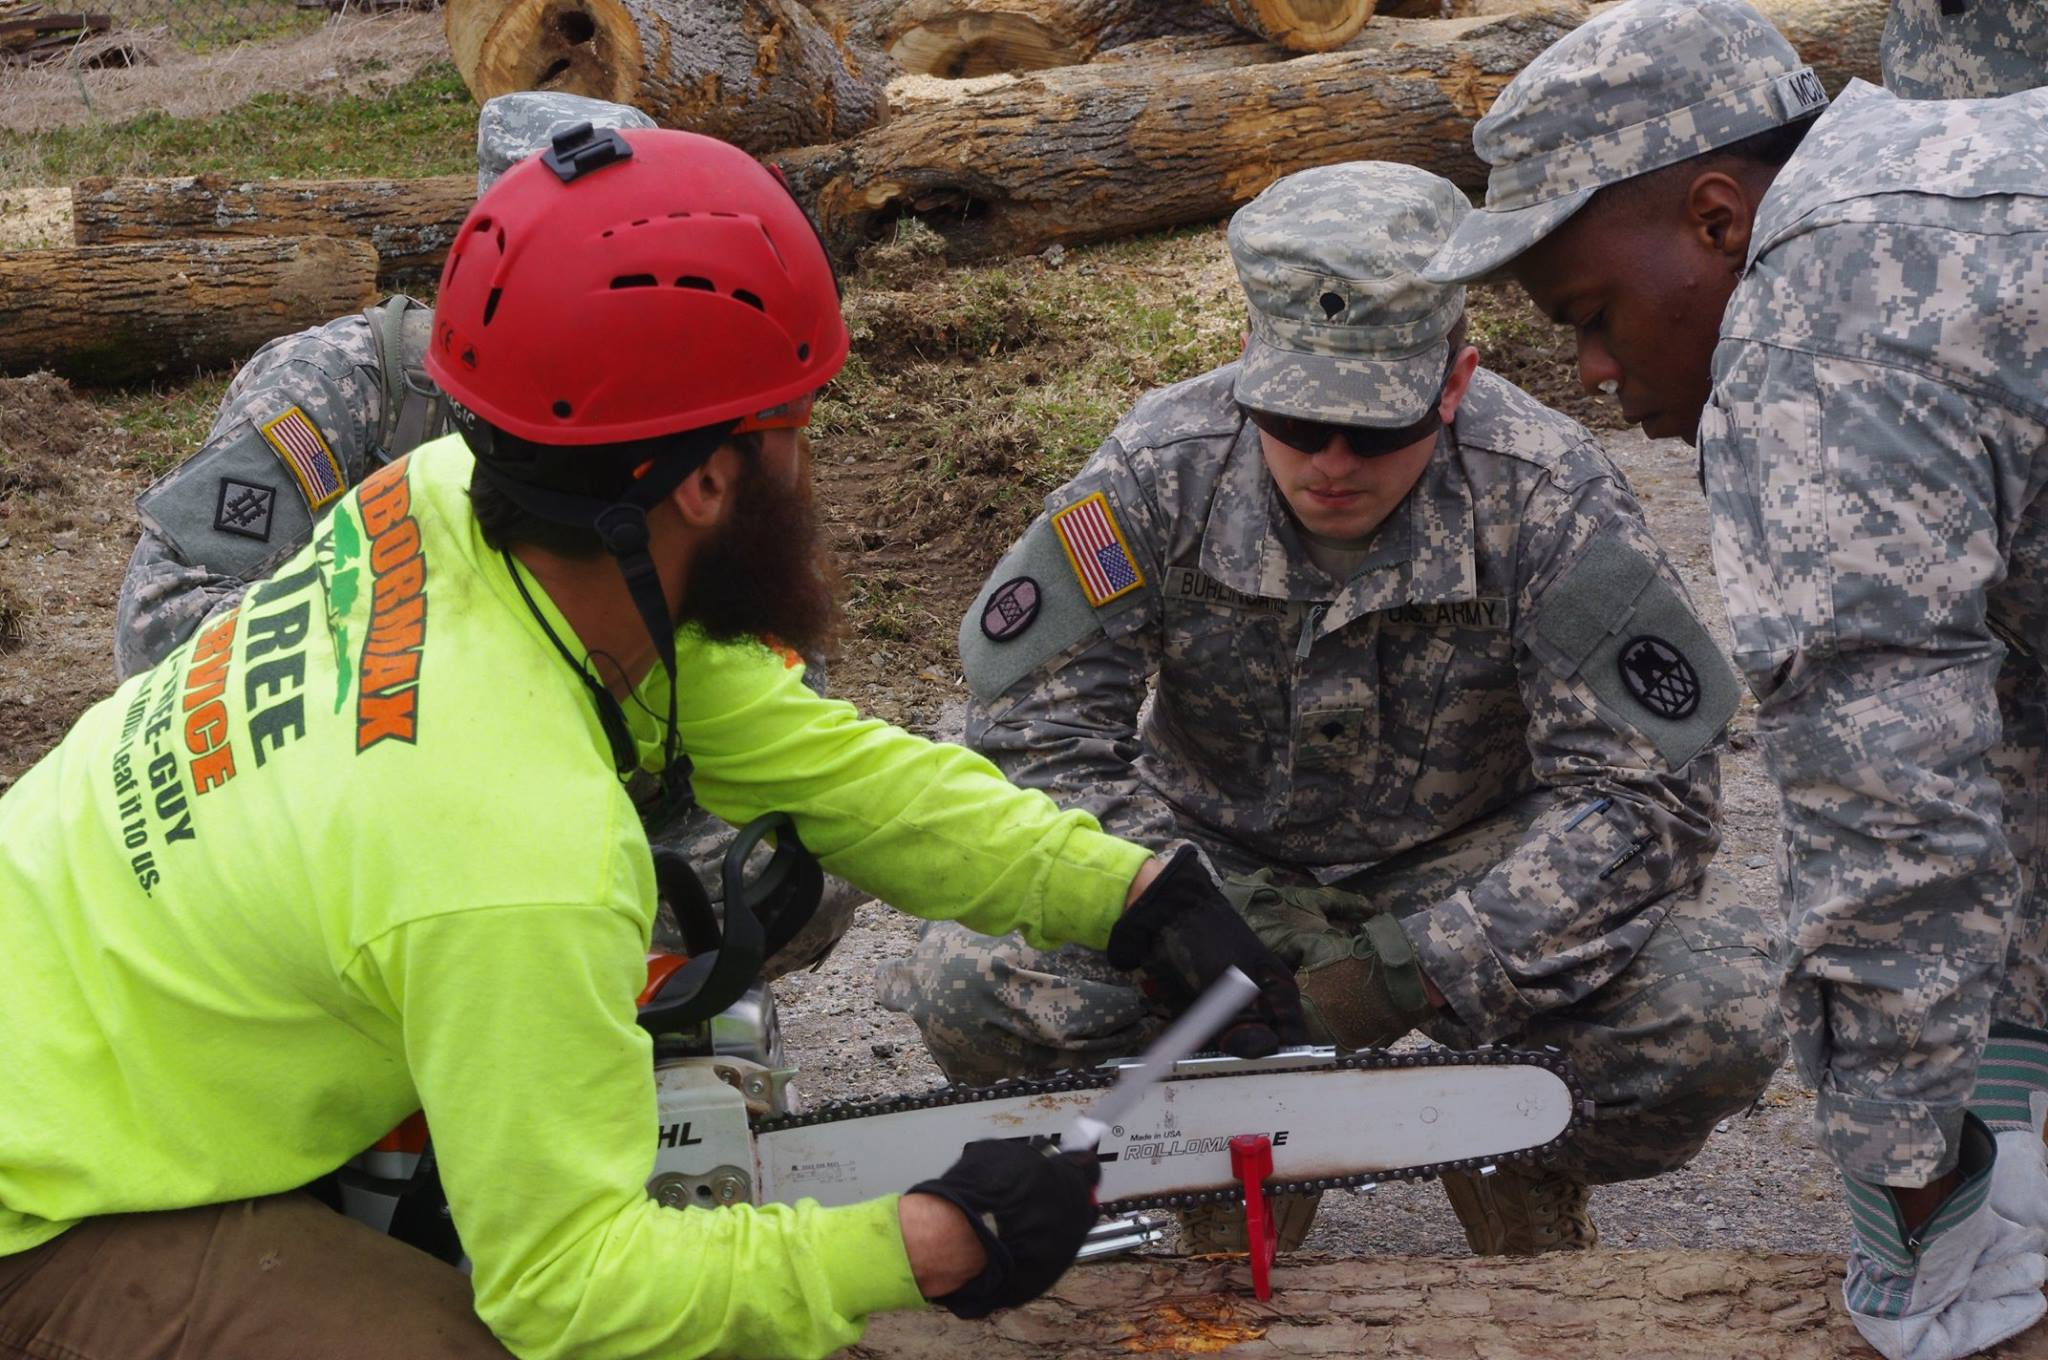 raleigh tree removal service trains national guard